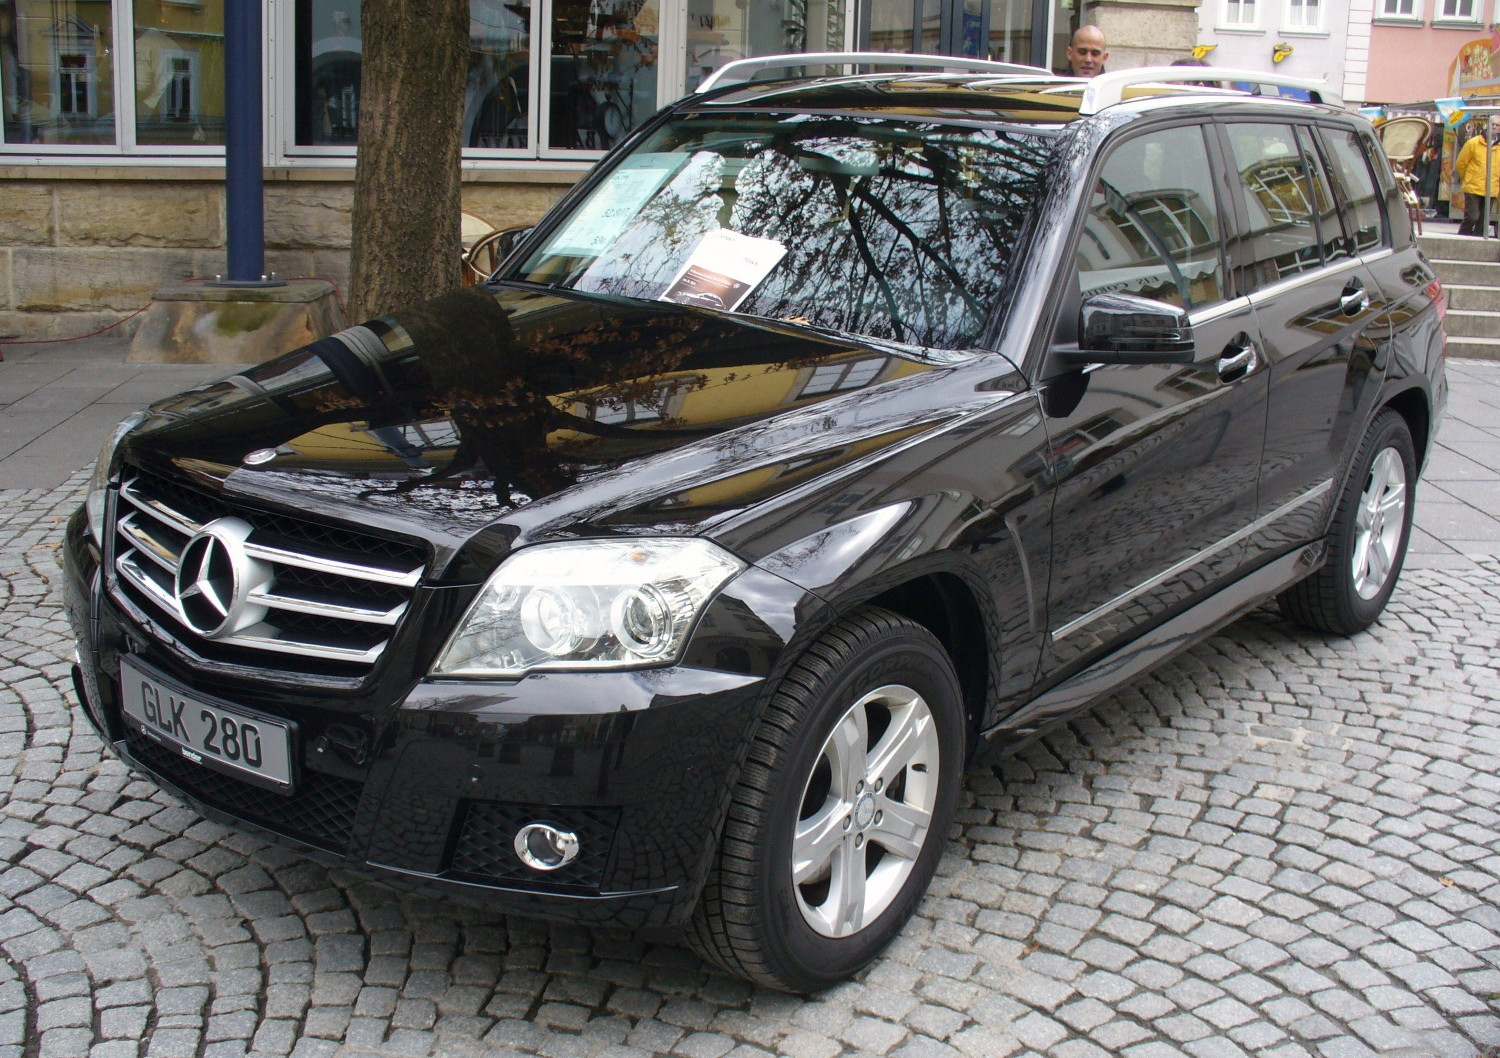 File Mercedes Benz X204 Glk 280 4matic Obsidianschwarz Jpg